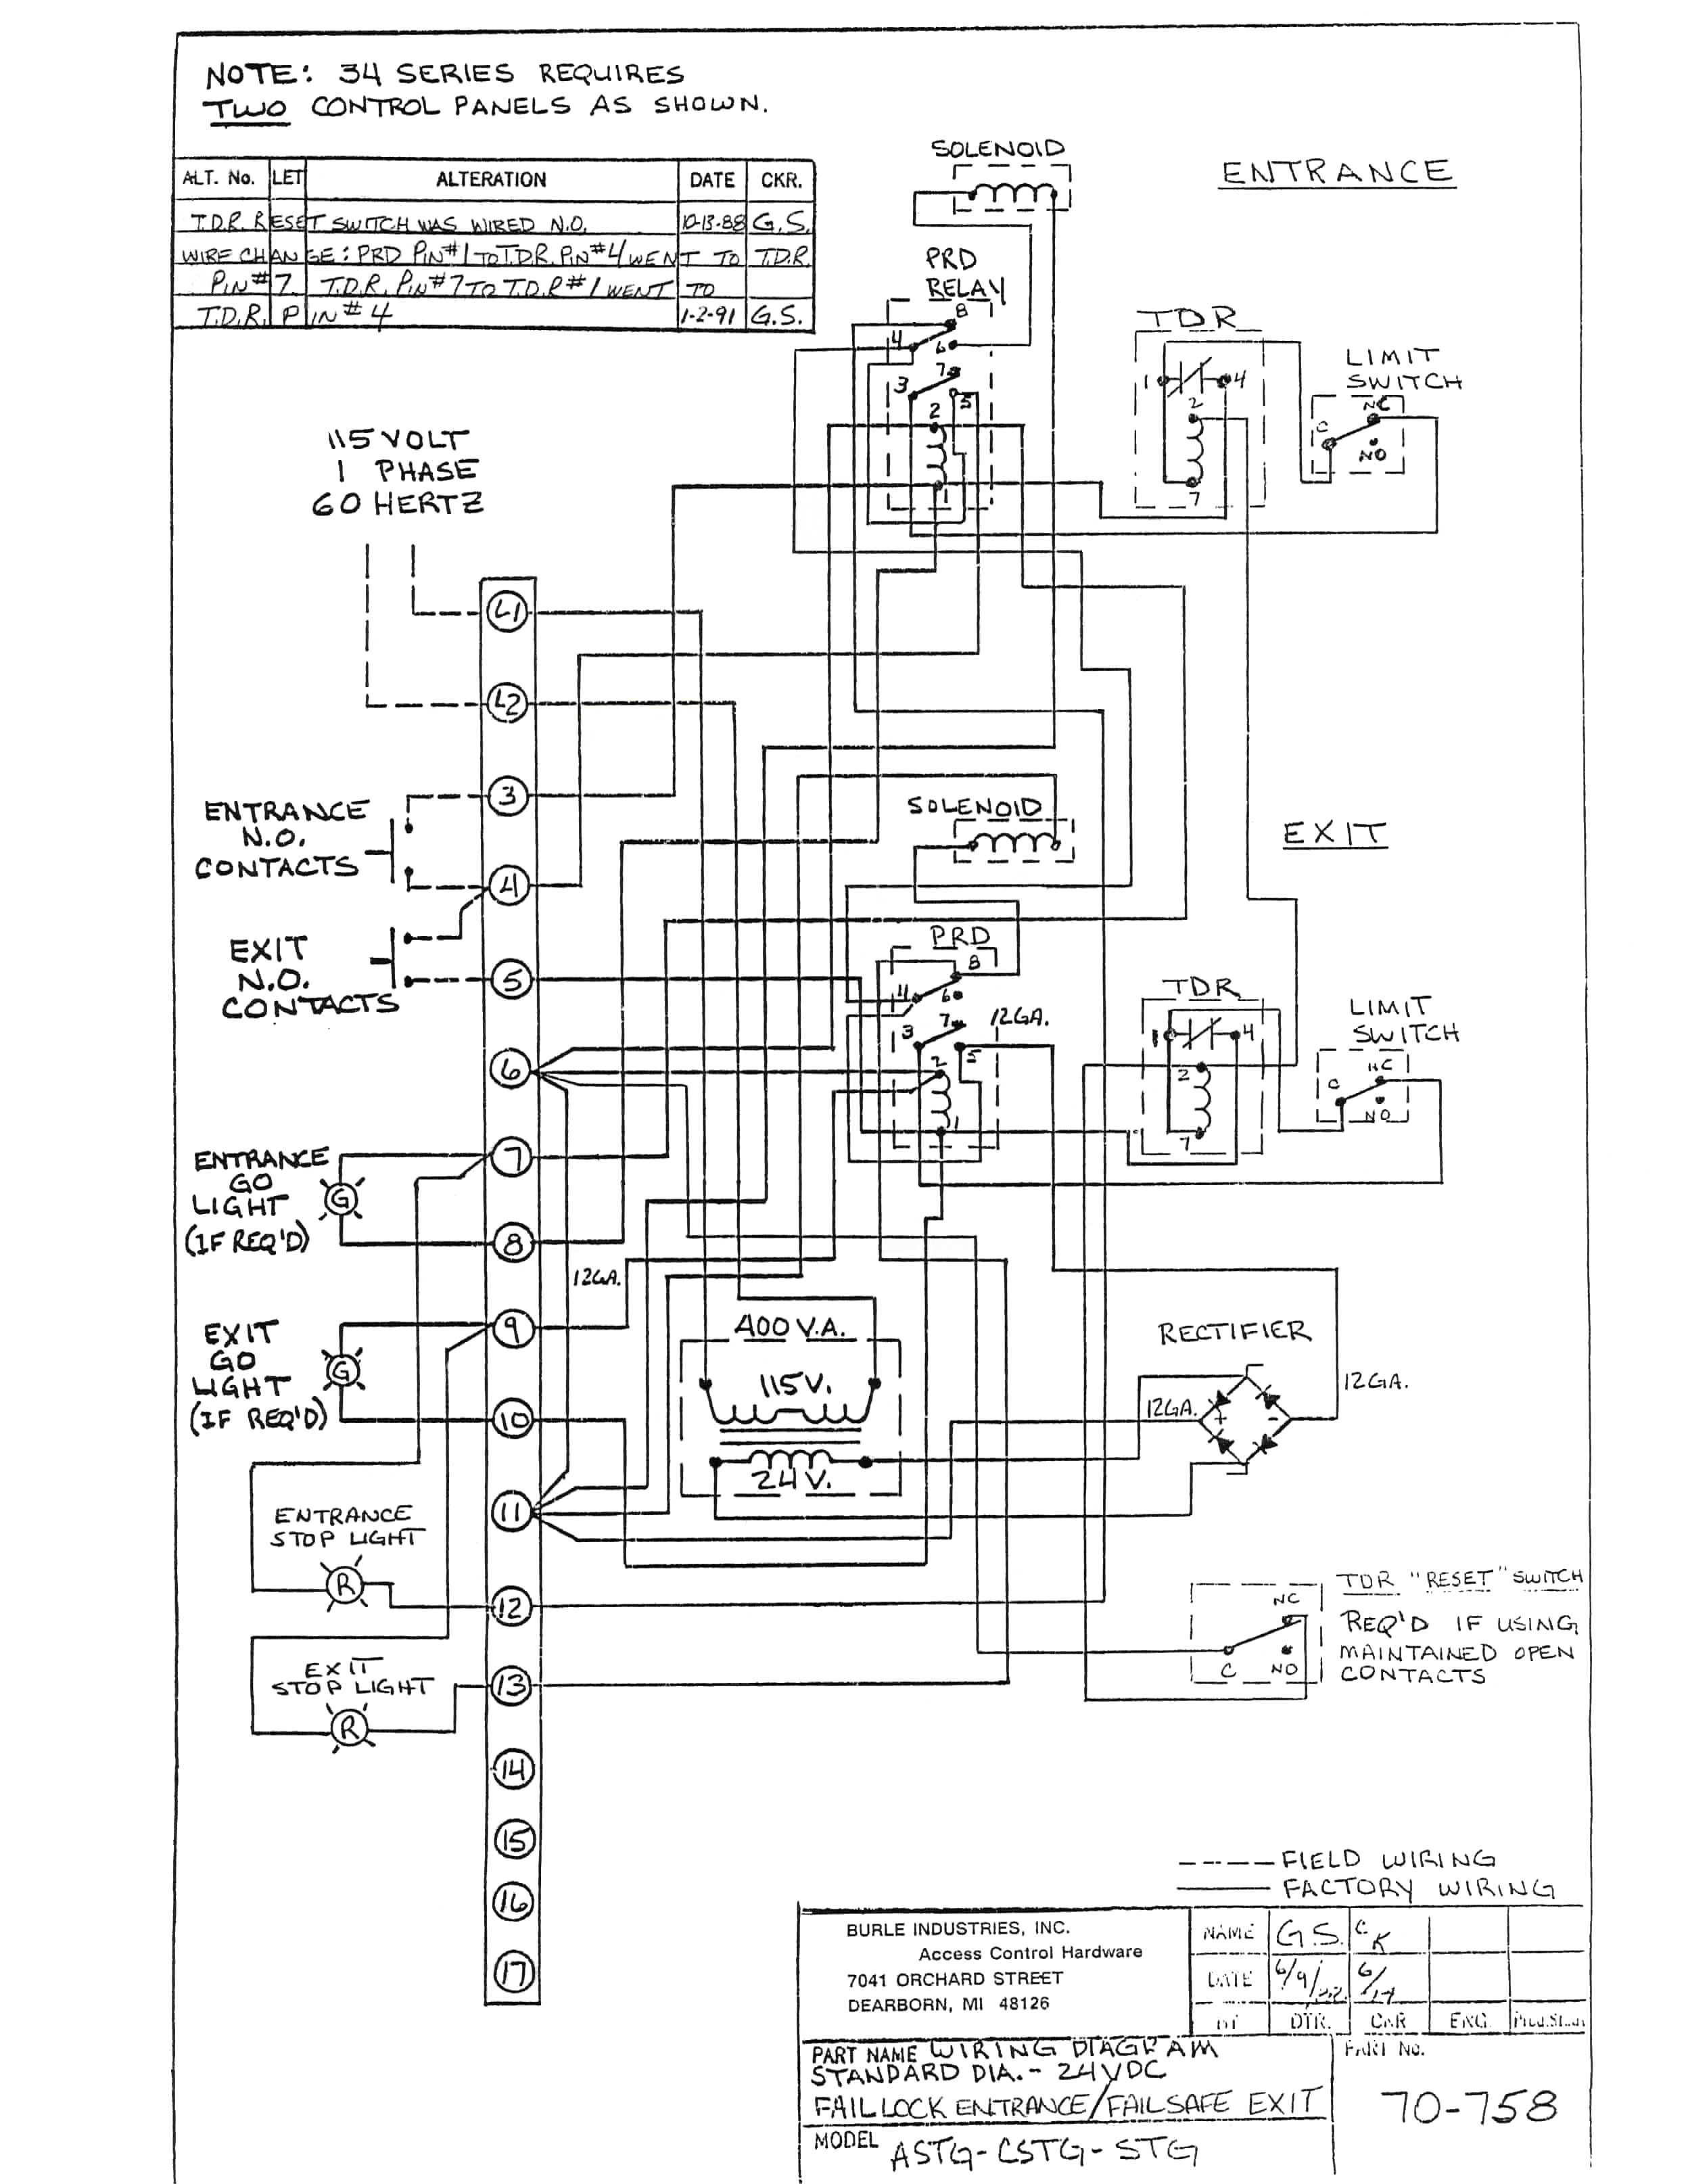 Imperial wiring schematic 1964 ford falcon wiring harness wiring stg relay schematic w time delayresize6652c860 diagrams trane wiring diagrams 1951 imperial sciox Gallery